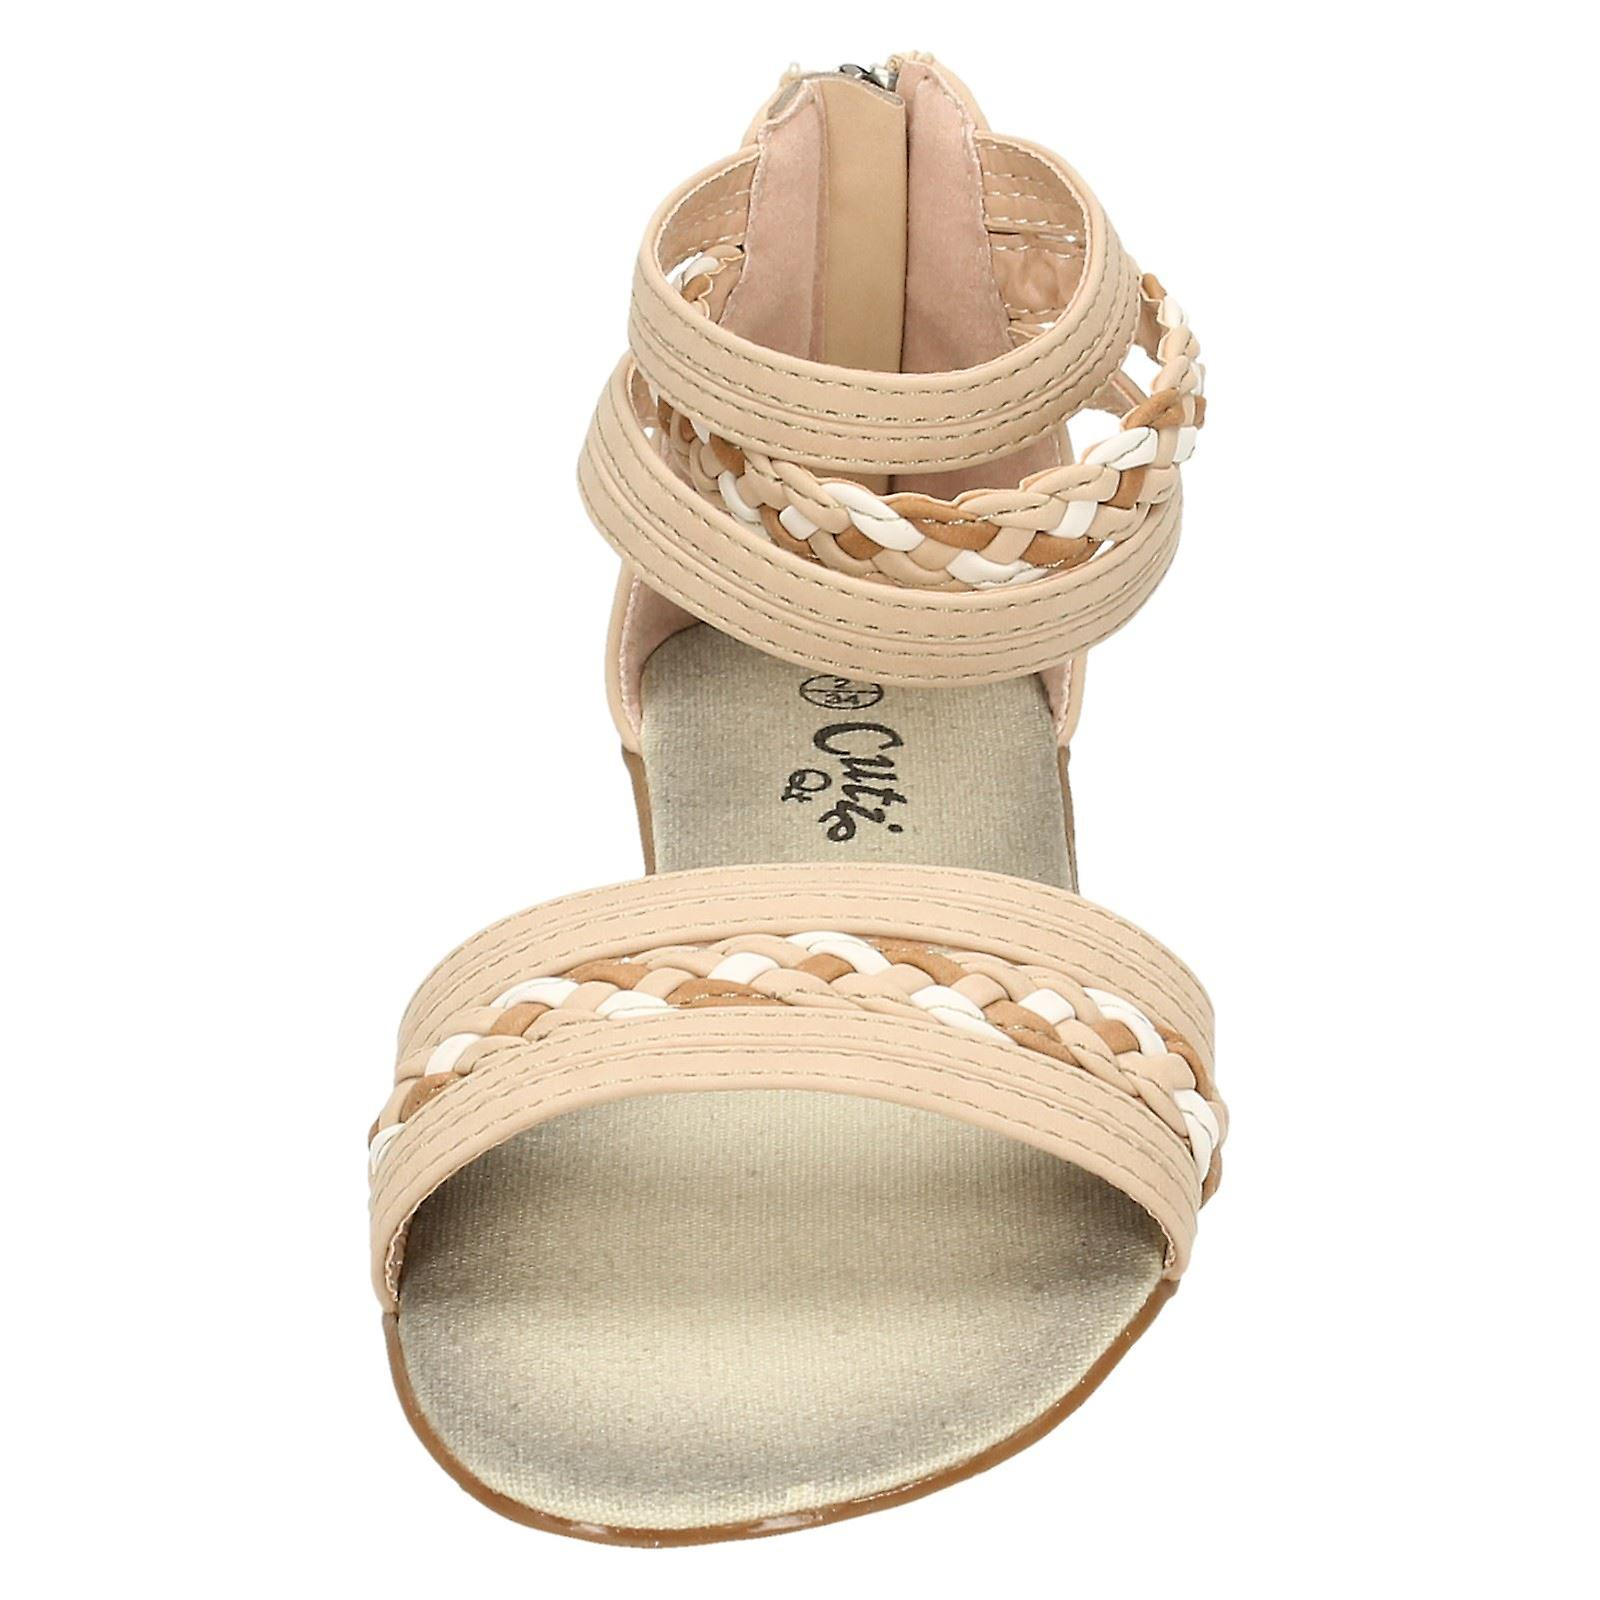 Girls Cutie Sandals with Ankle Cuff H0105